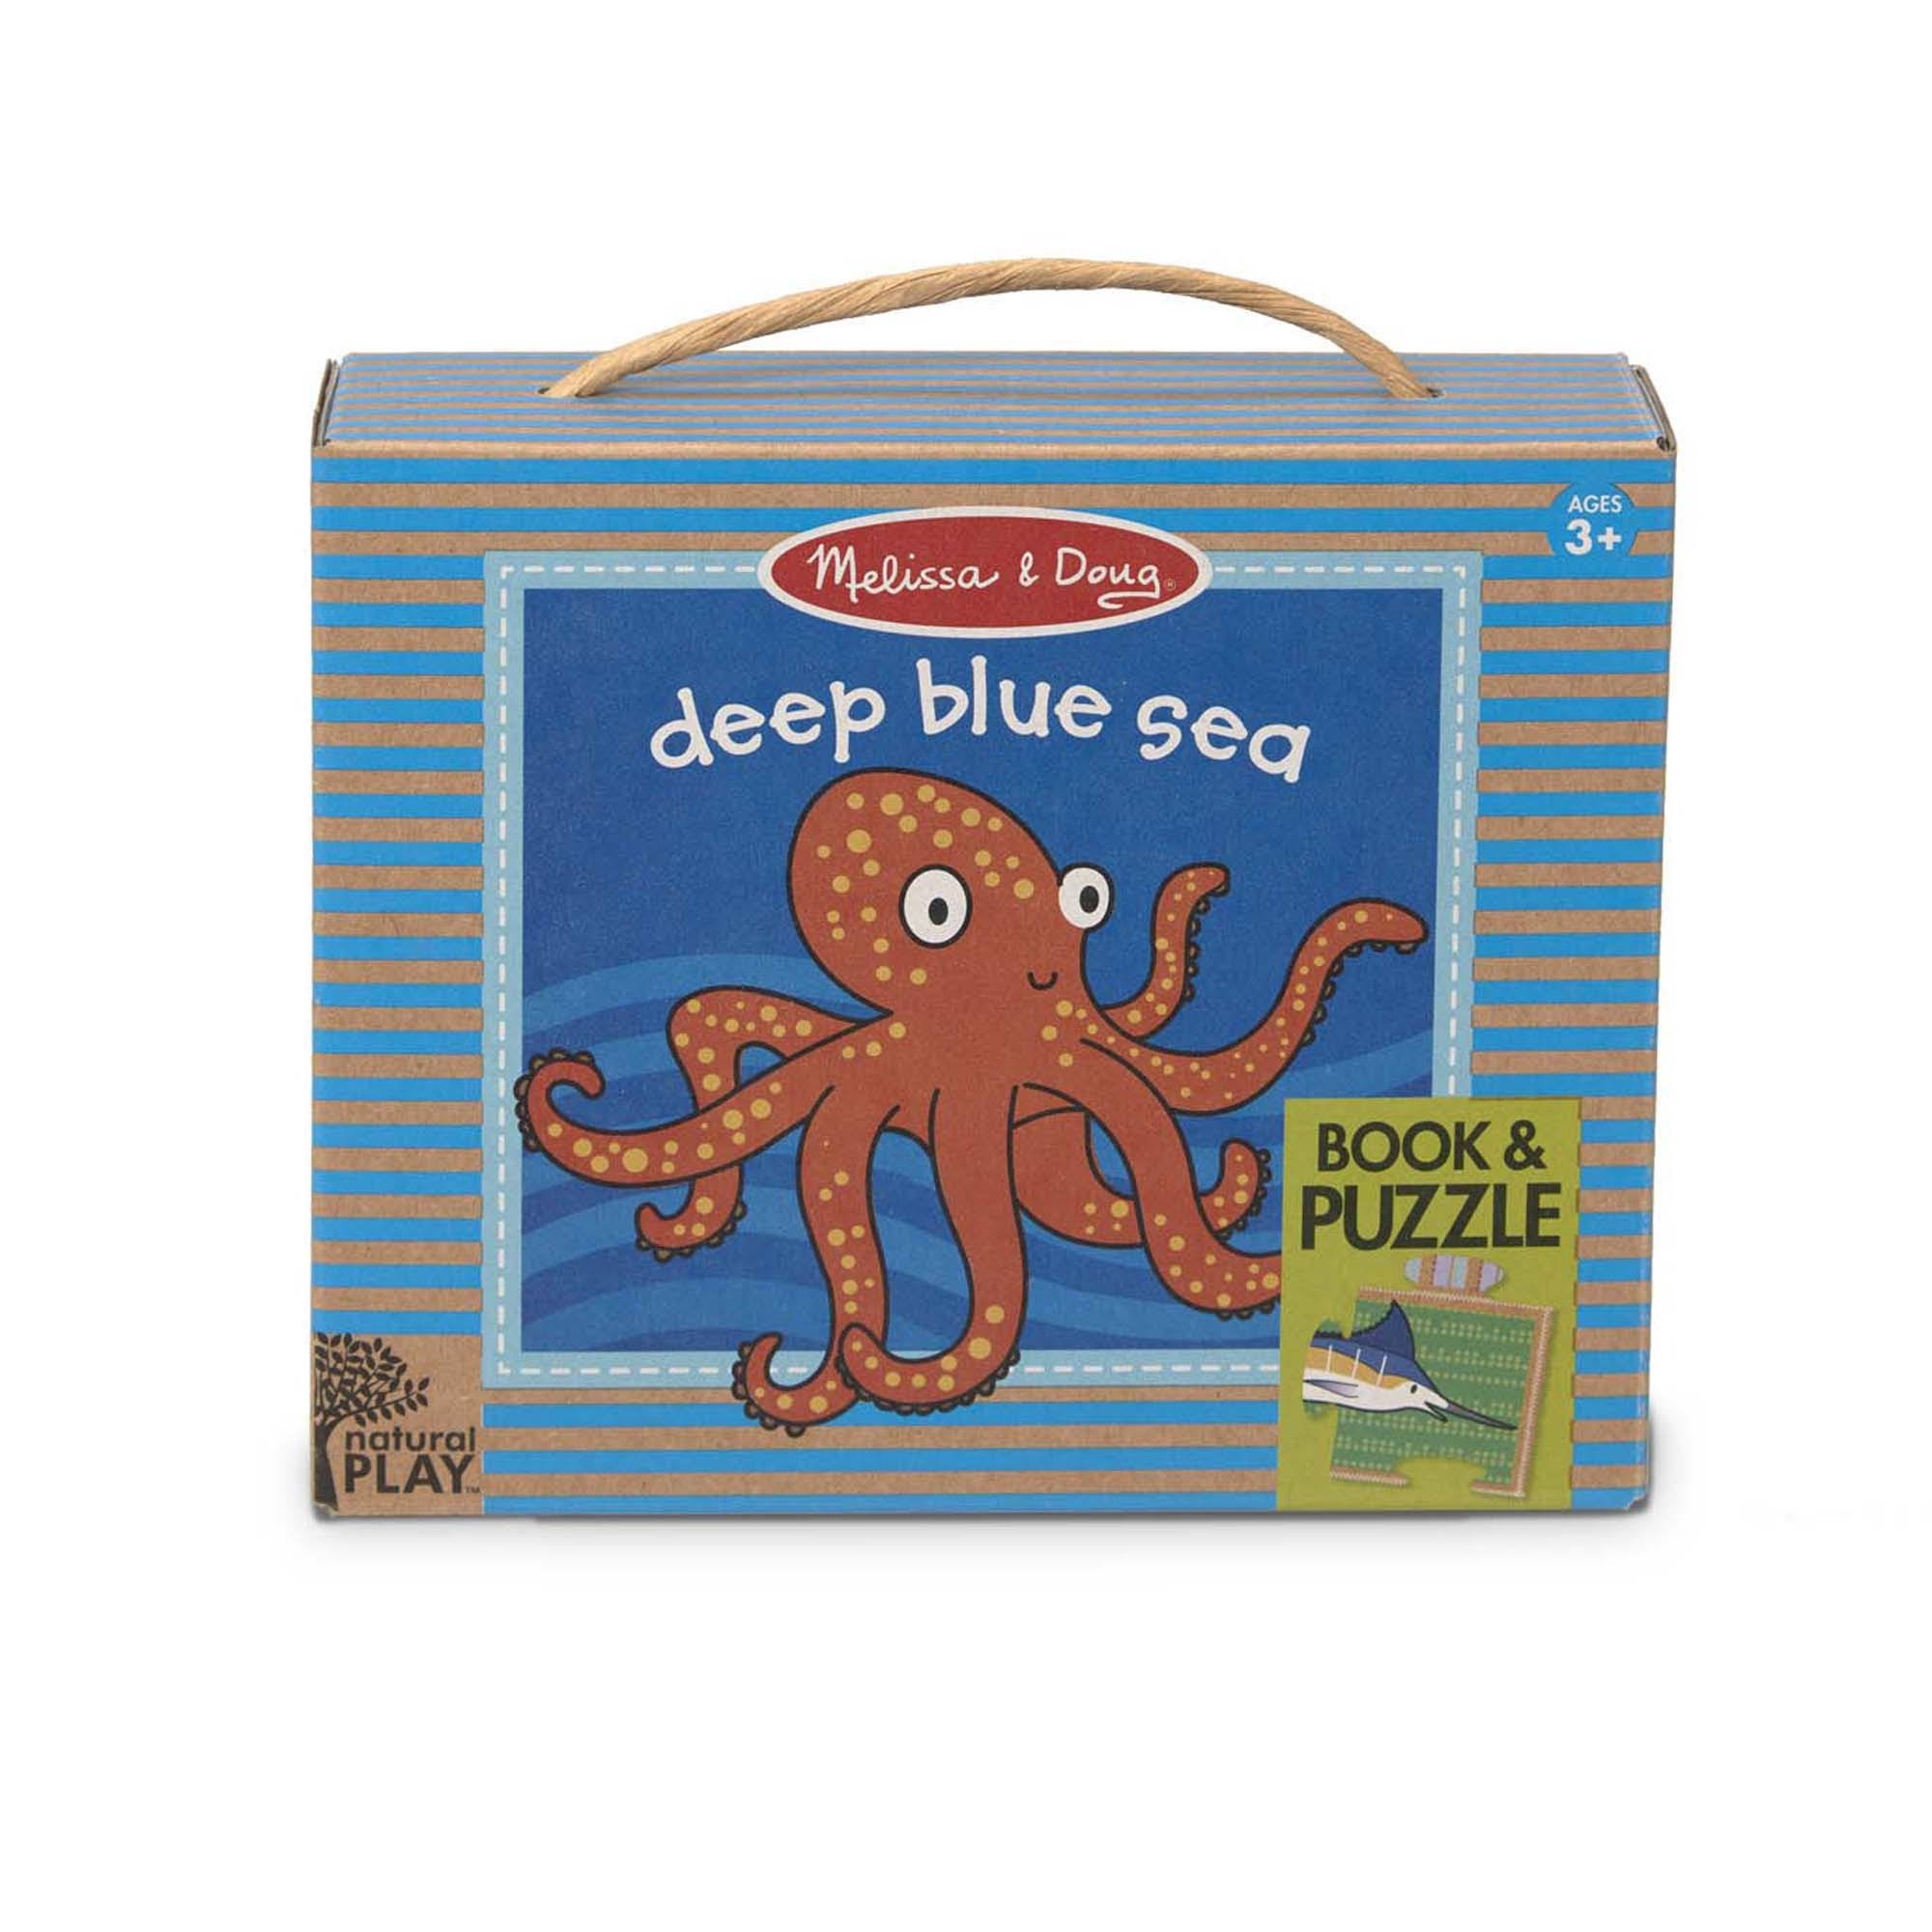 Melissa & Doug Natural Play Book & Puzzle Deep Blue Sea